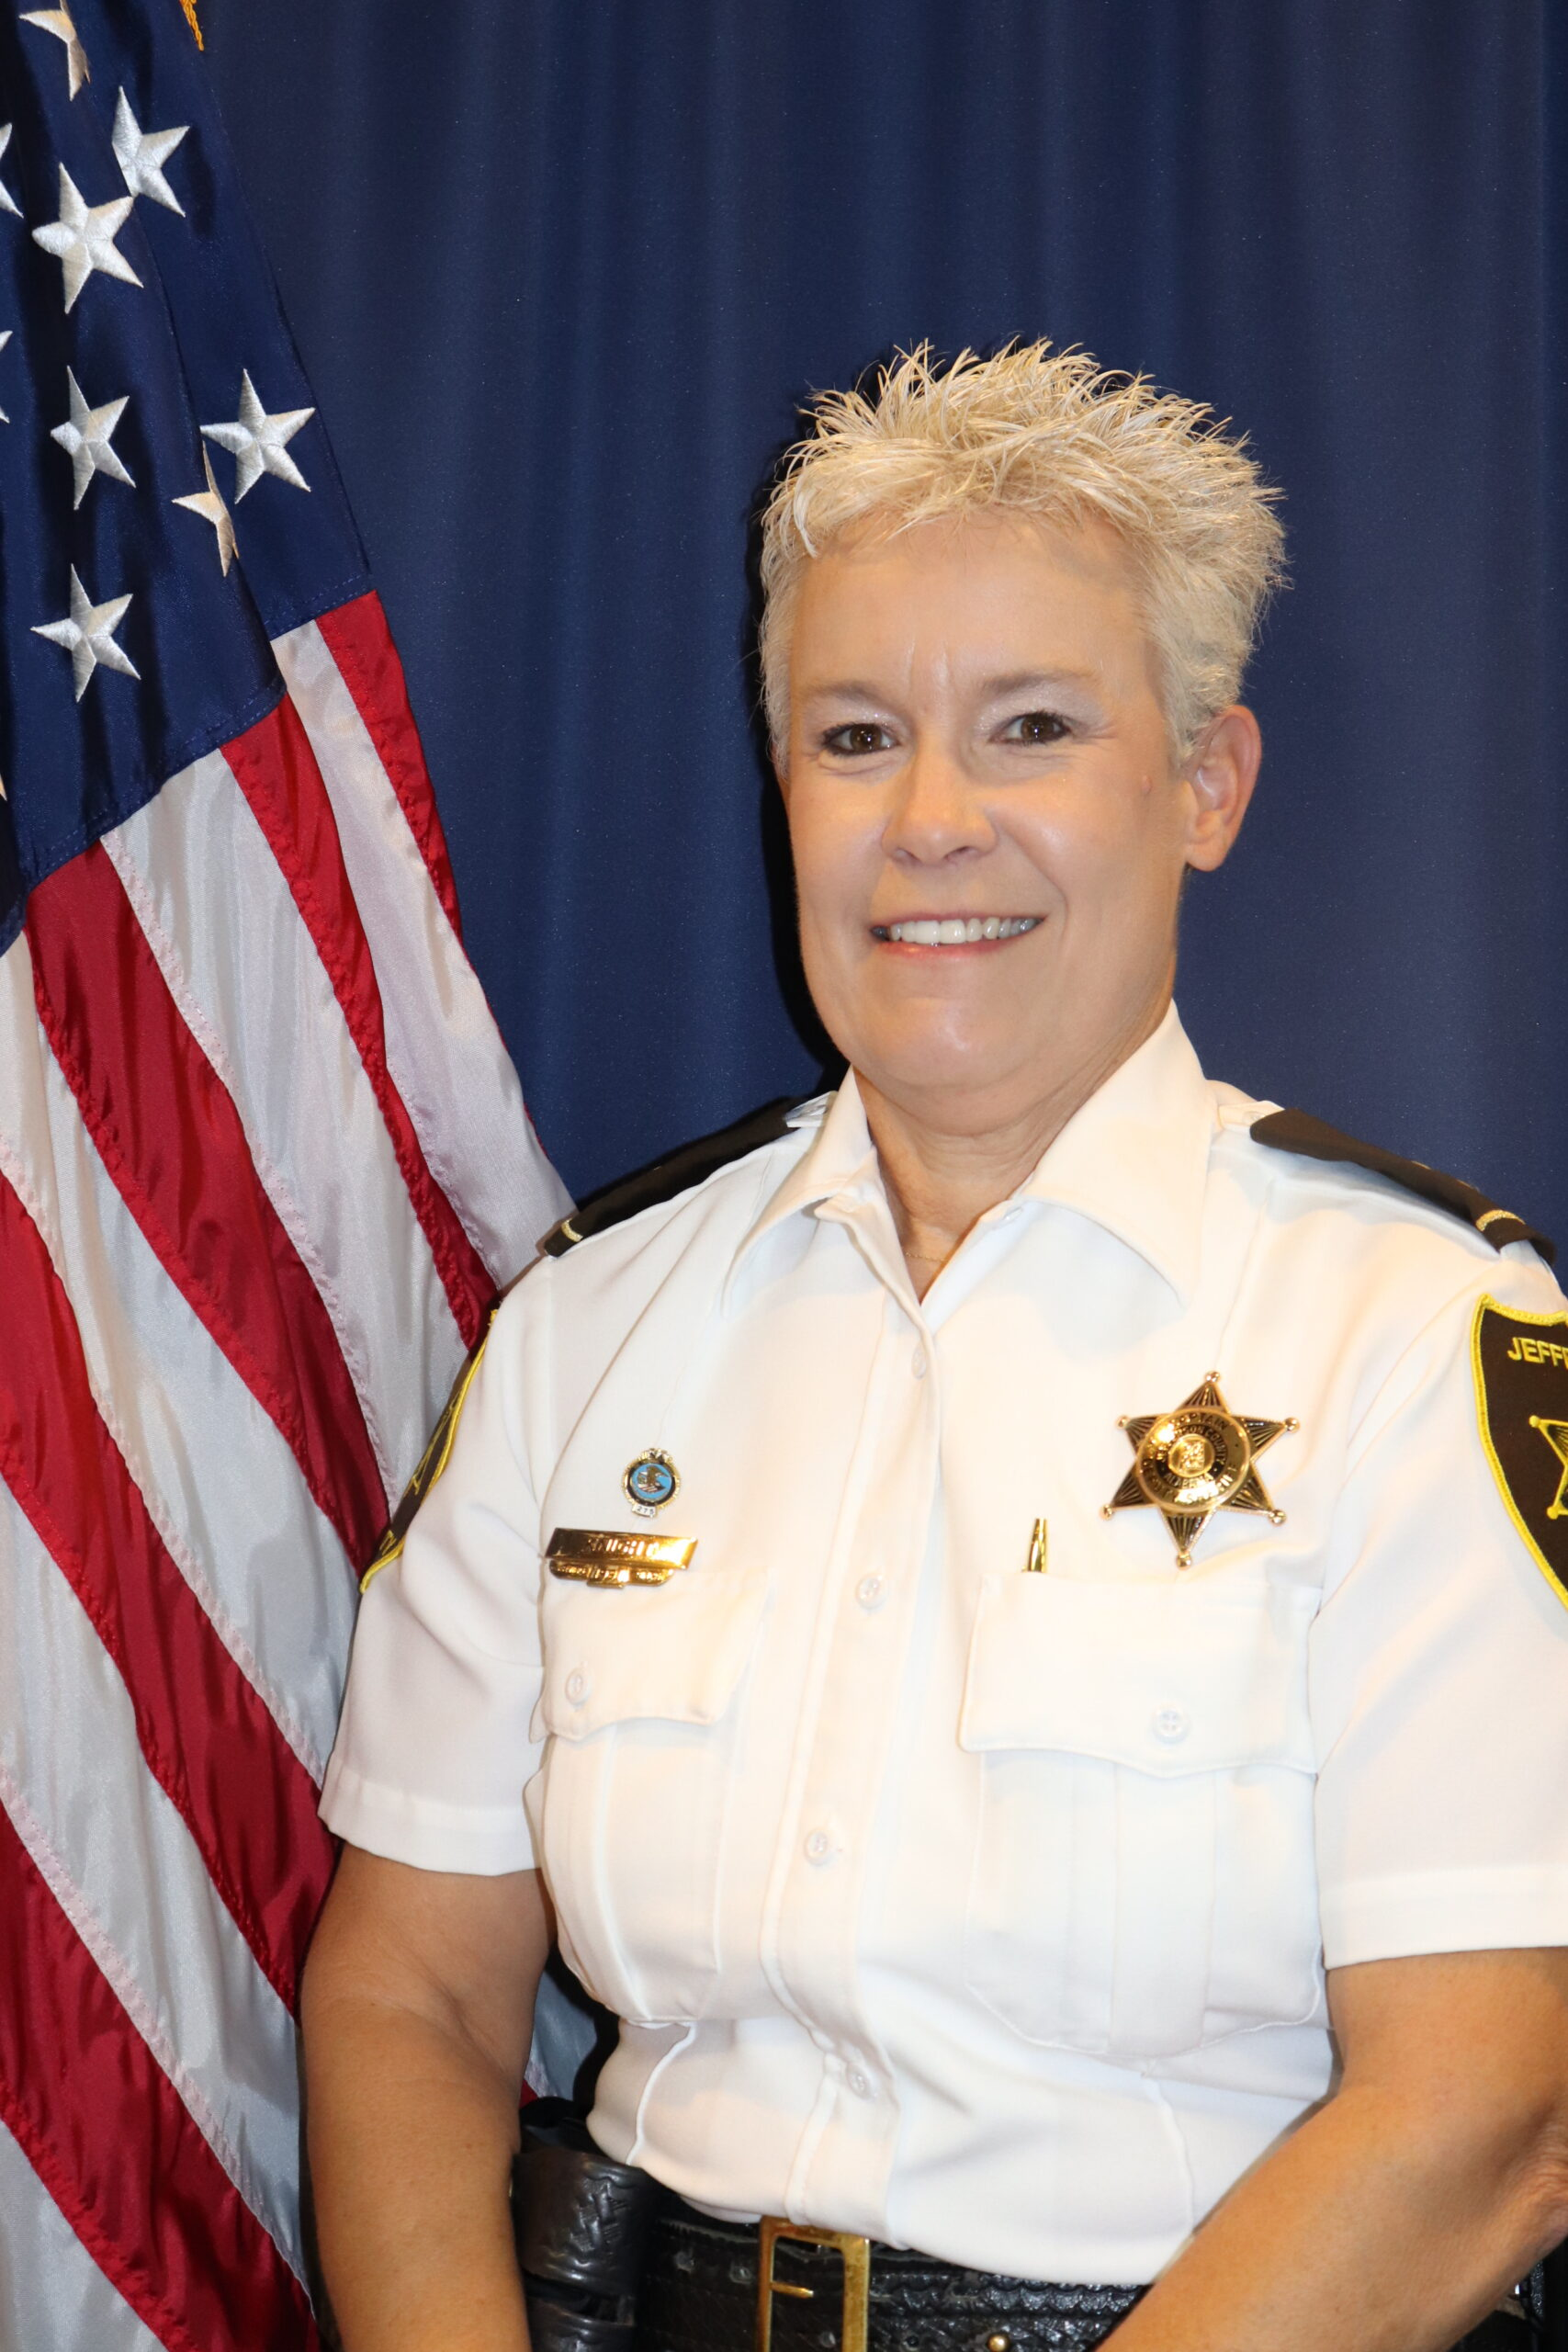 Command-Staff-Jefferson-County-Sheriff-Department-Captain-Andrea-Knight